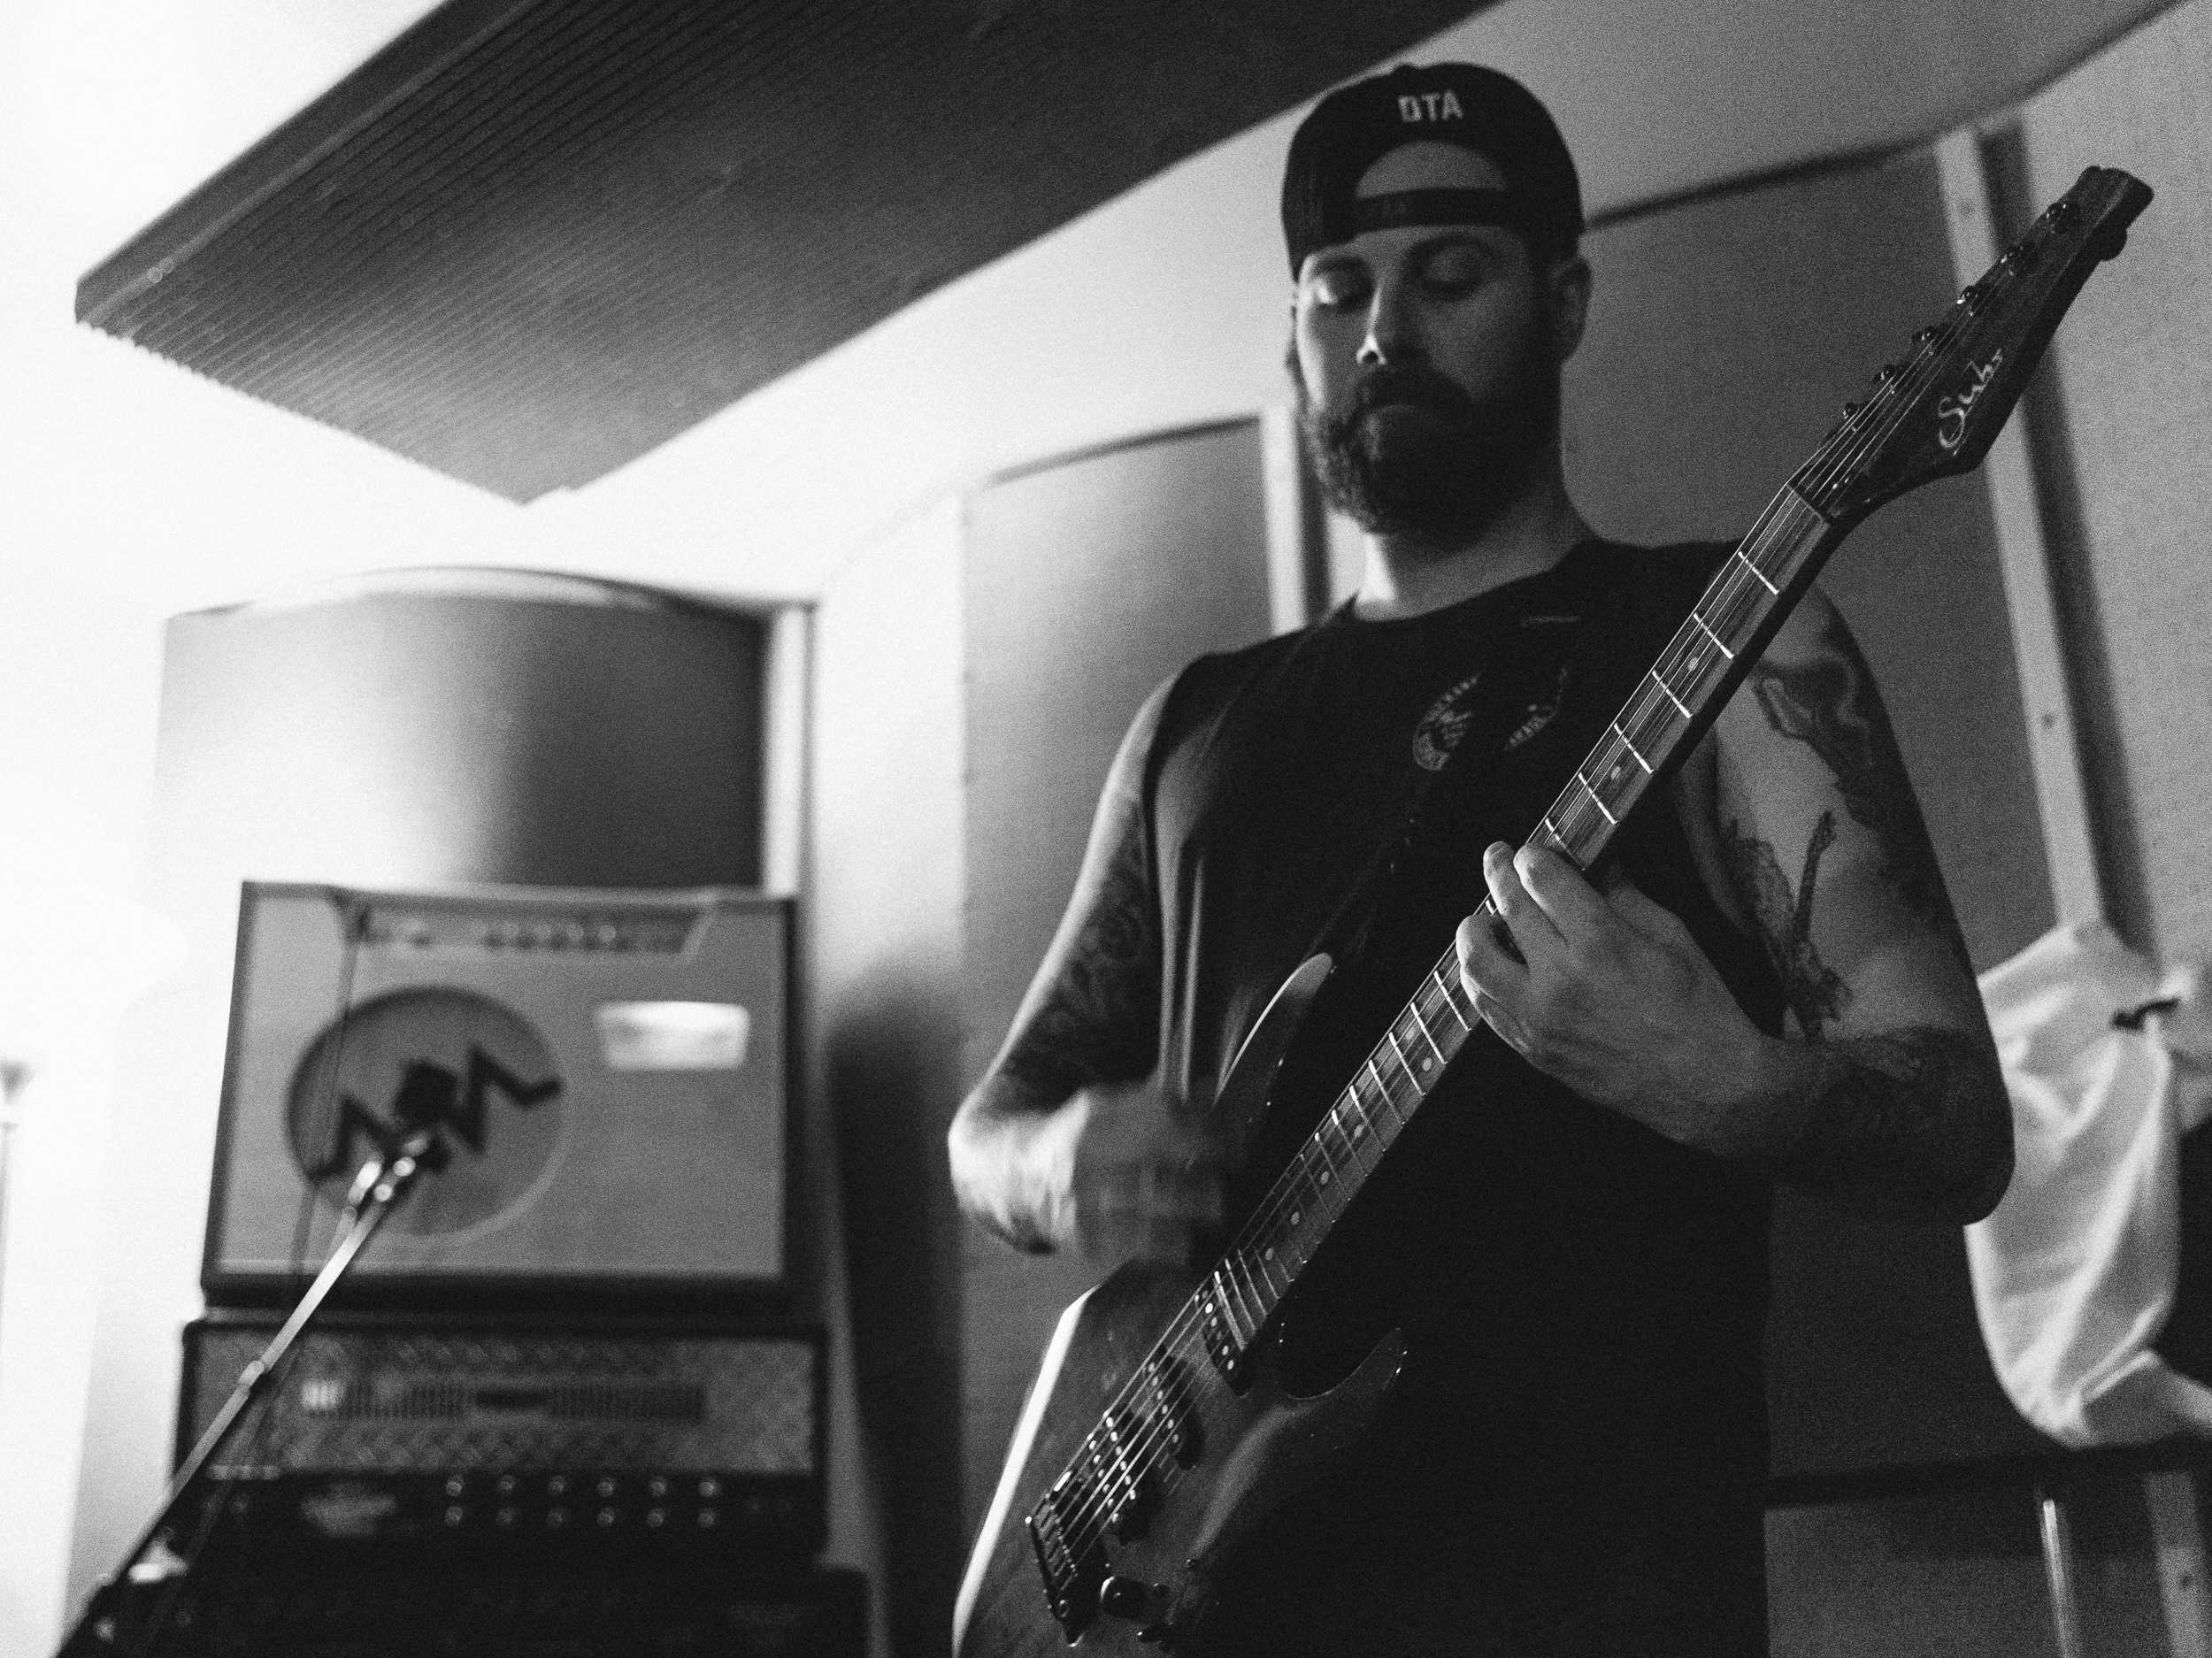 Kevin Skaff - A Day To Remember in Studio